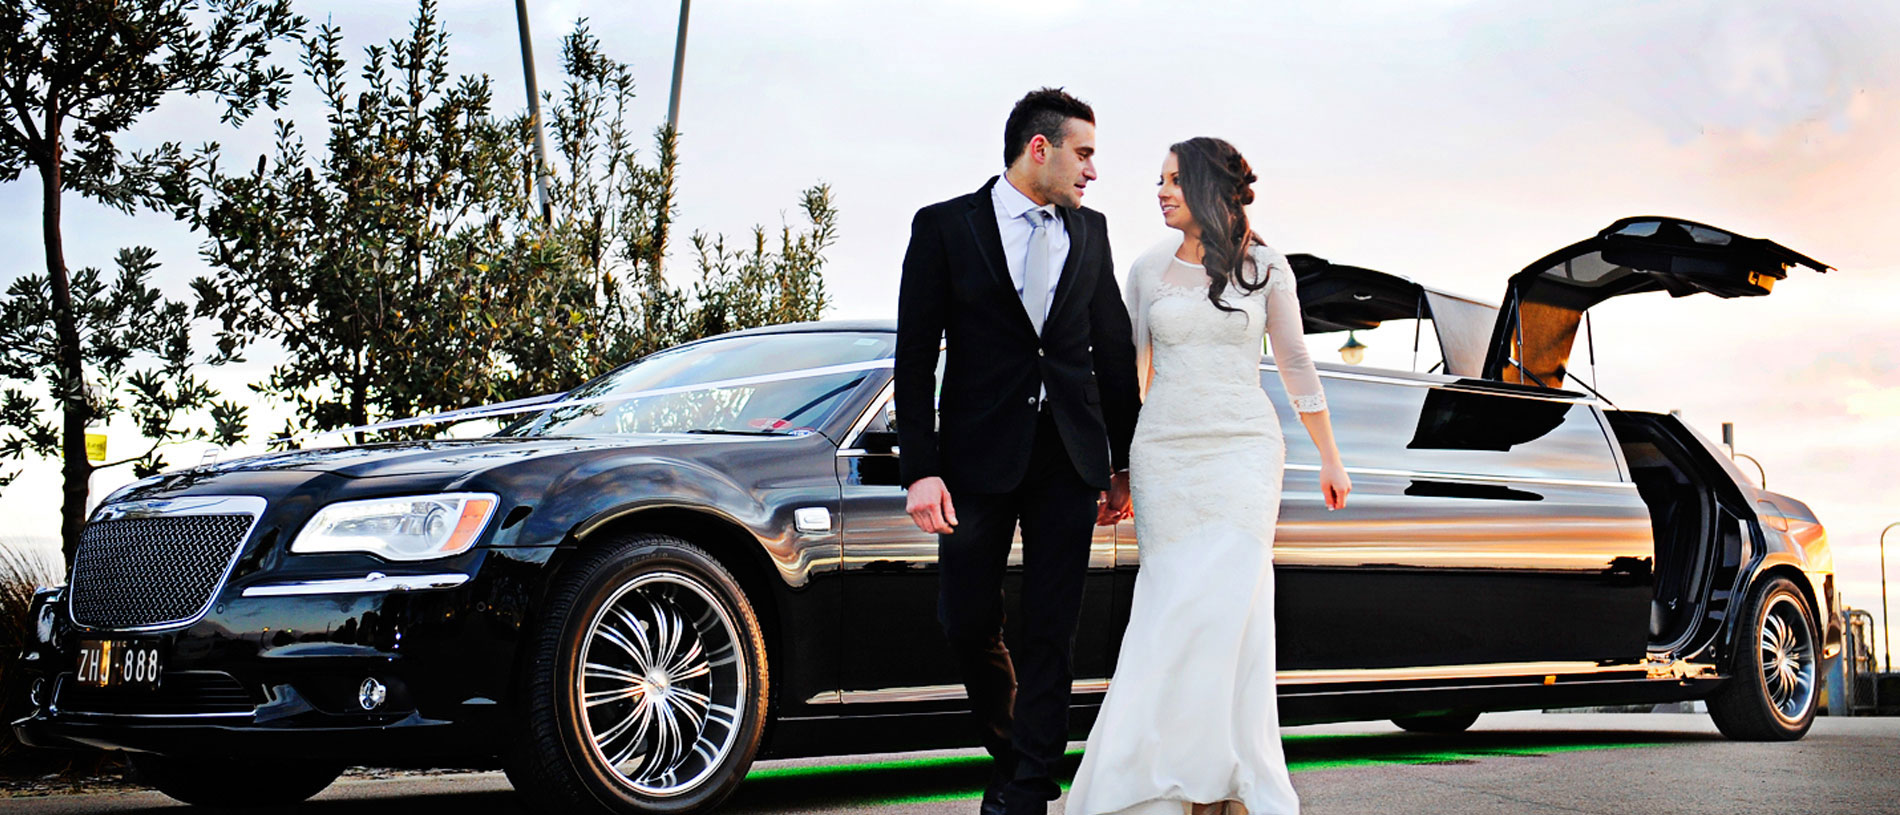 Wedding-Car-Hire-Melbourne-Luxury-Limousines-Wedding-Hire.jpg?profile=RESIZE_710x